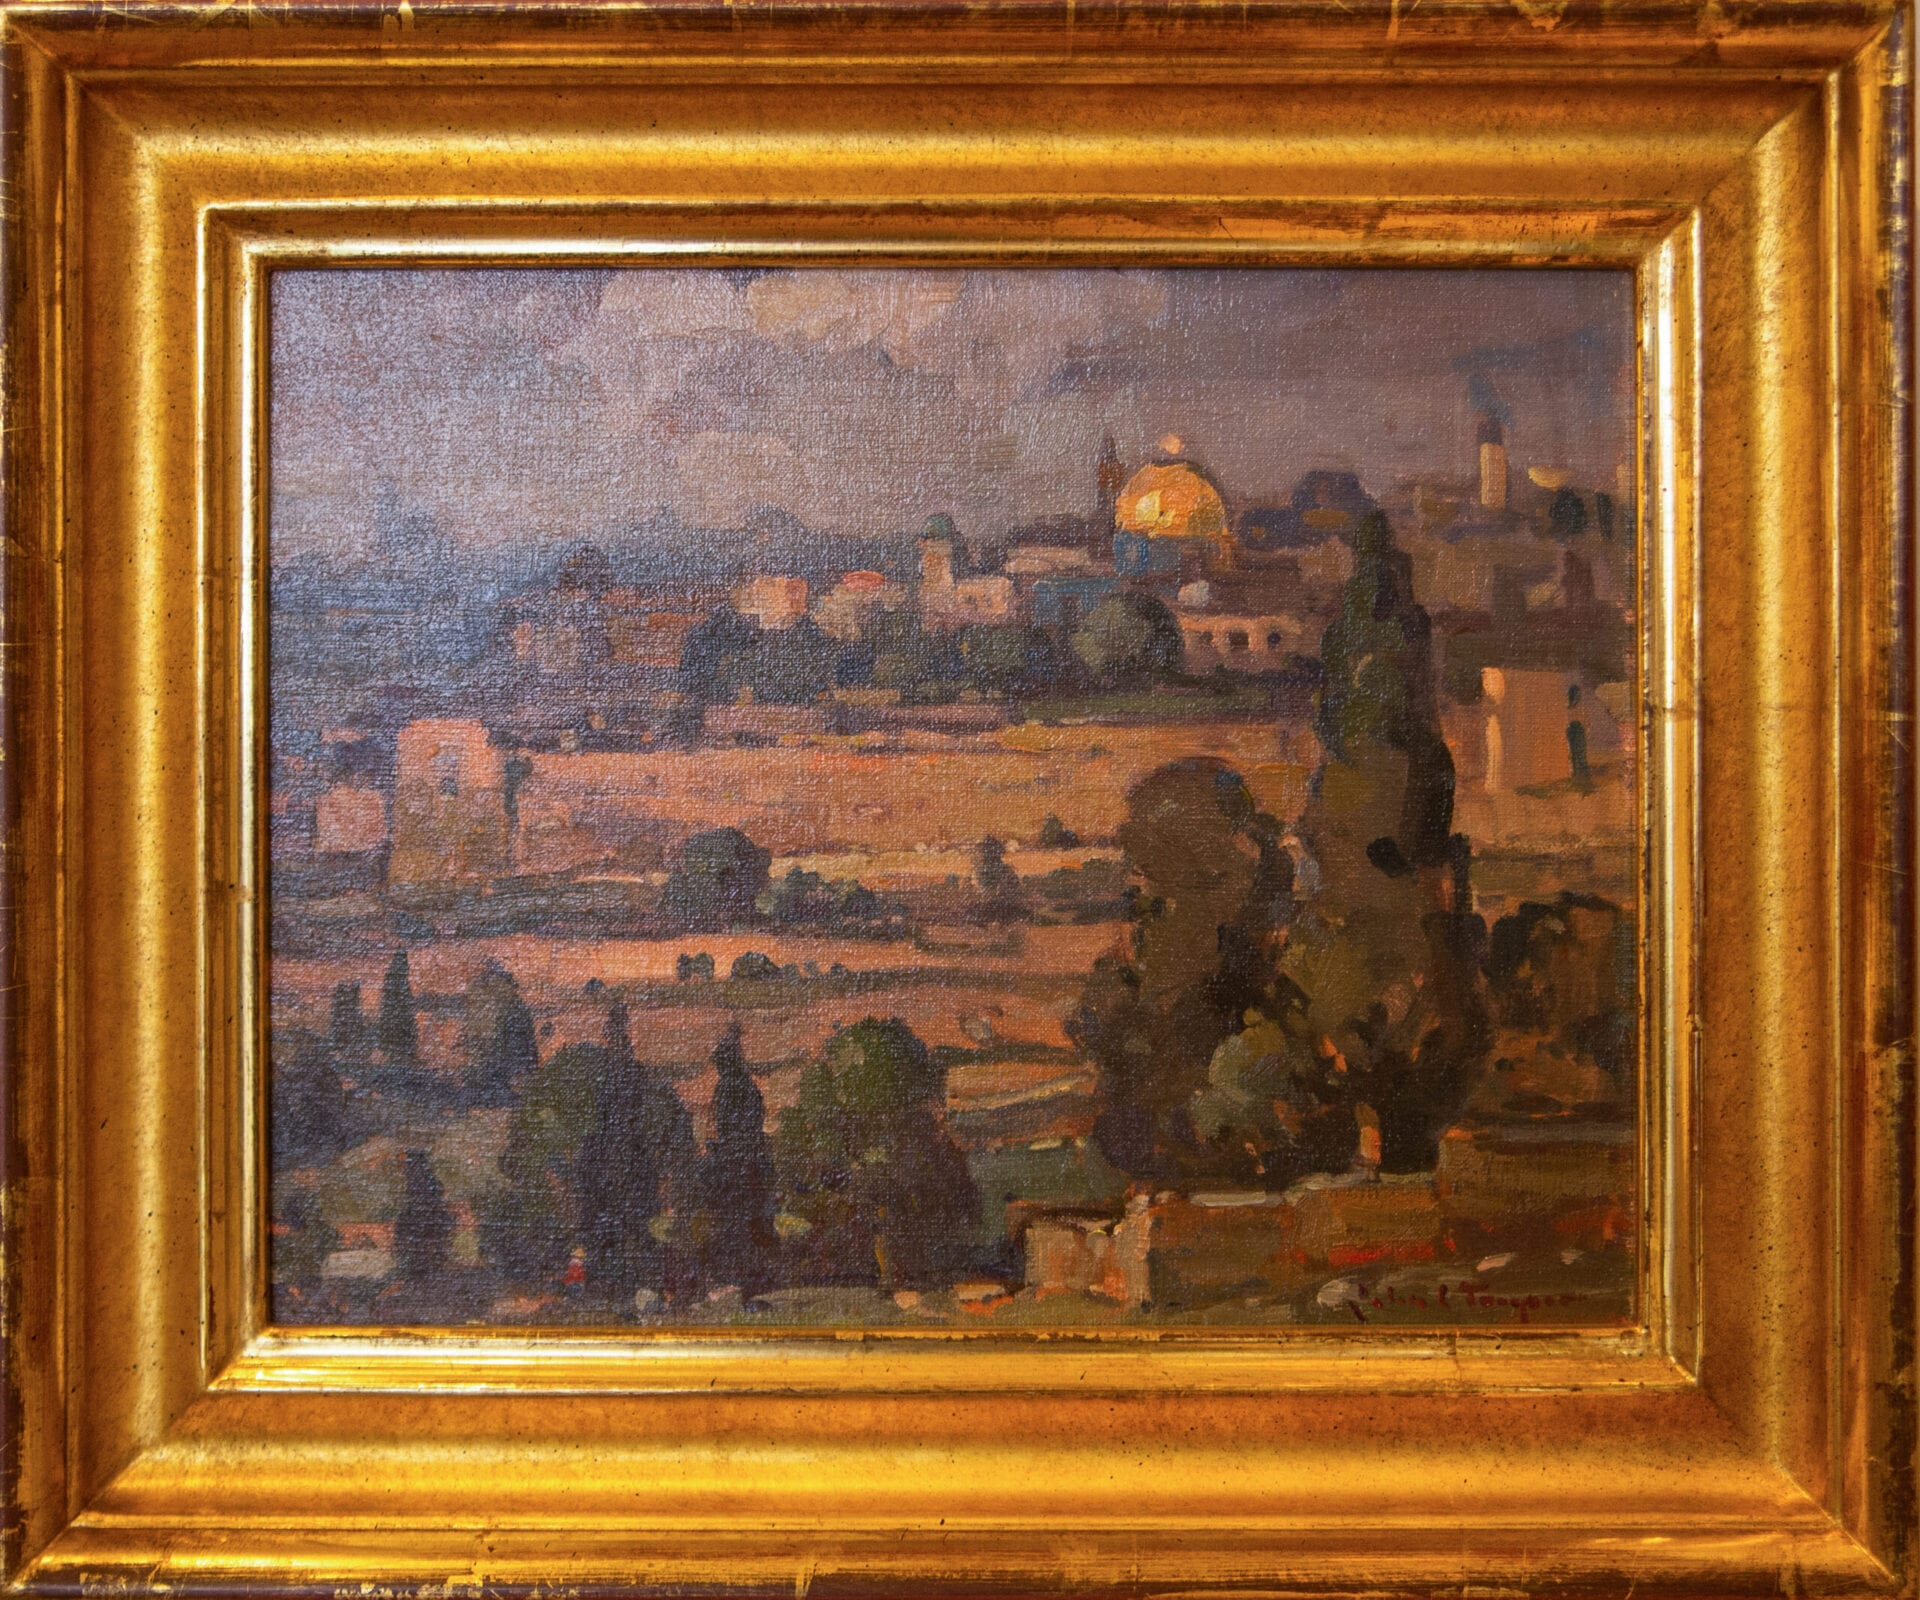 View of Jerusalem (Mt. of Olives) | John Traynor | Oil | 11 x 14""